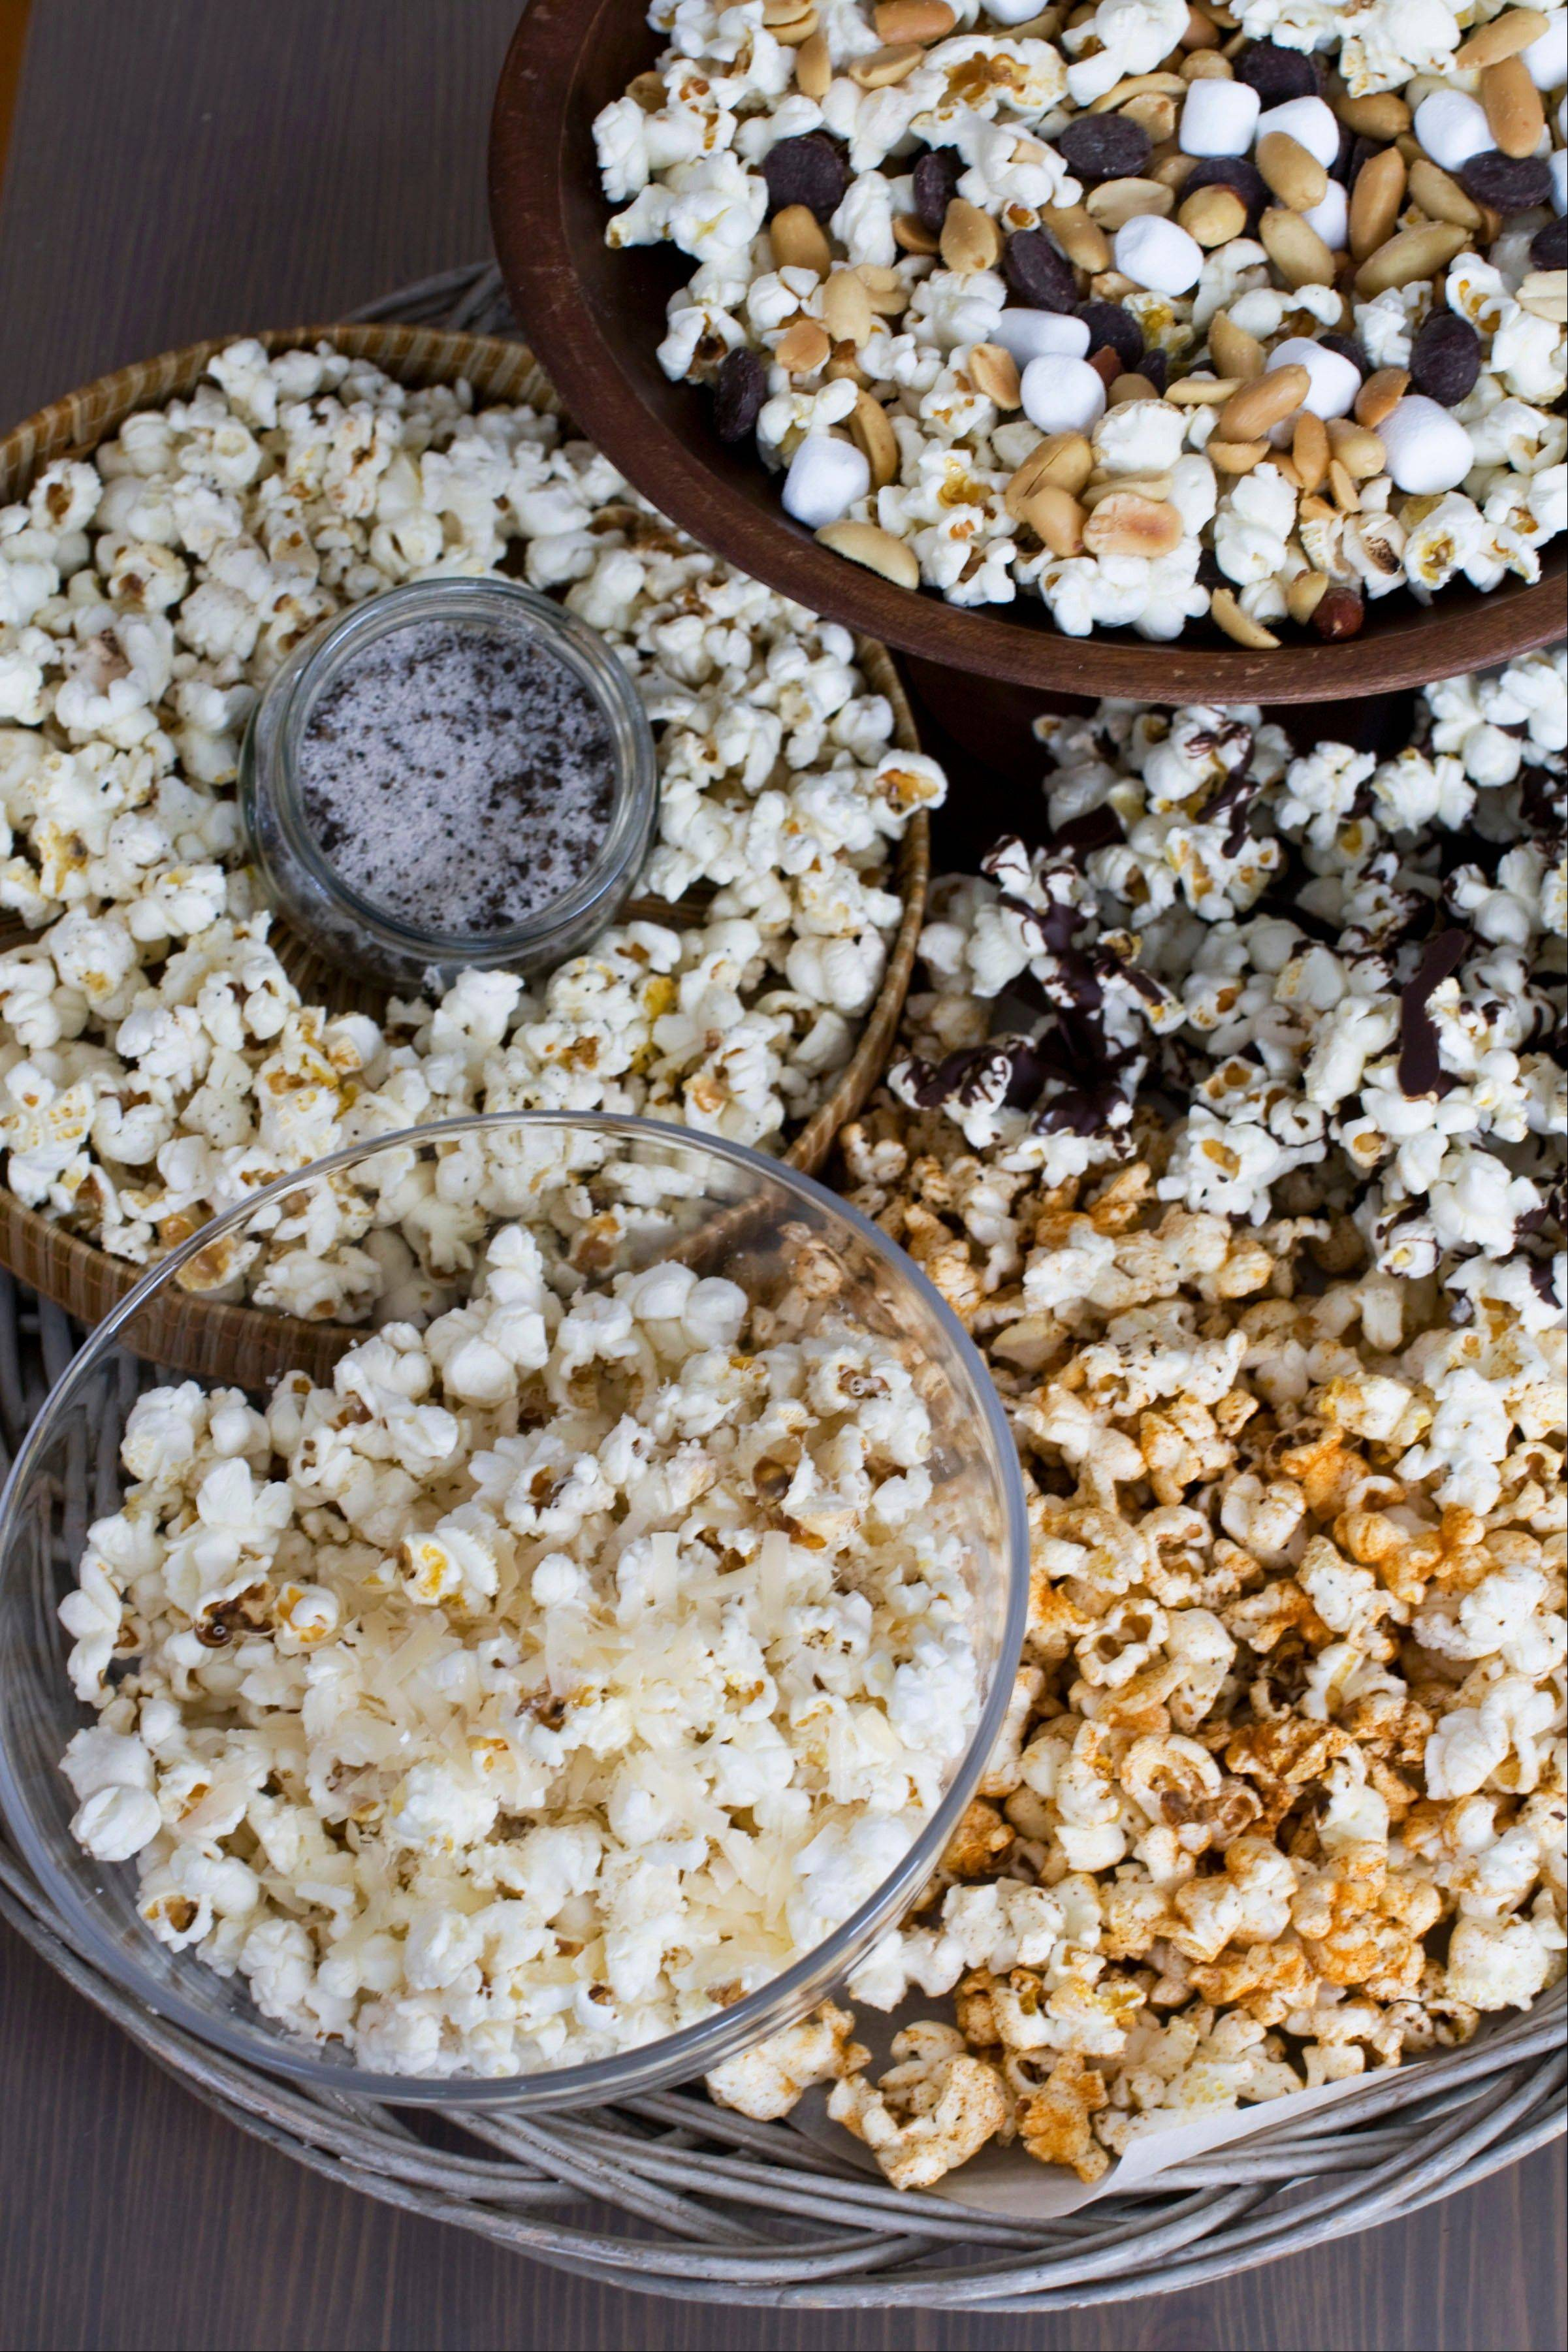 A new federal program restricts the type of snacks that may be sold in schools beginning in the fall. Among the potential targets are cheese- and candy-flavored versions of popcorn, which was designated Illinois' state snack food 11 years ago.